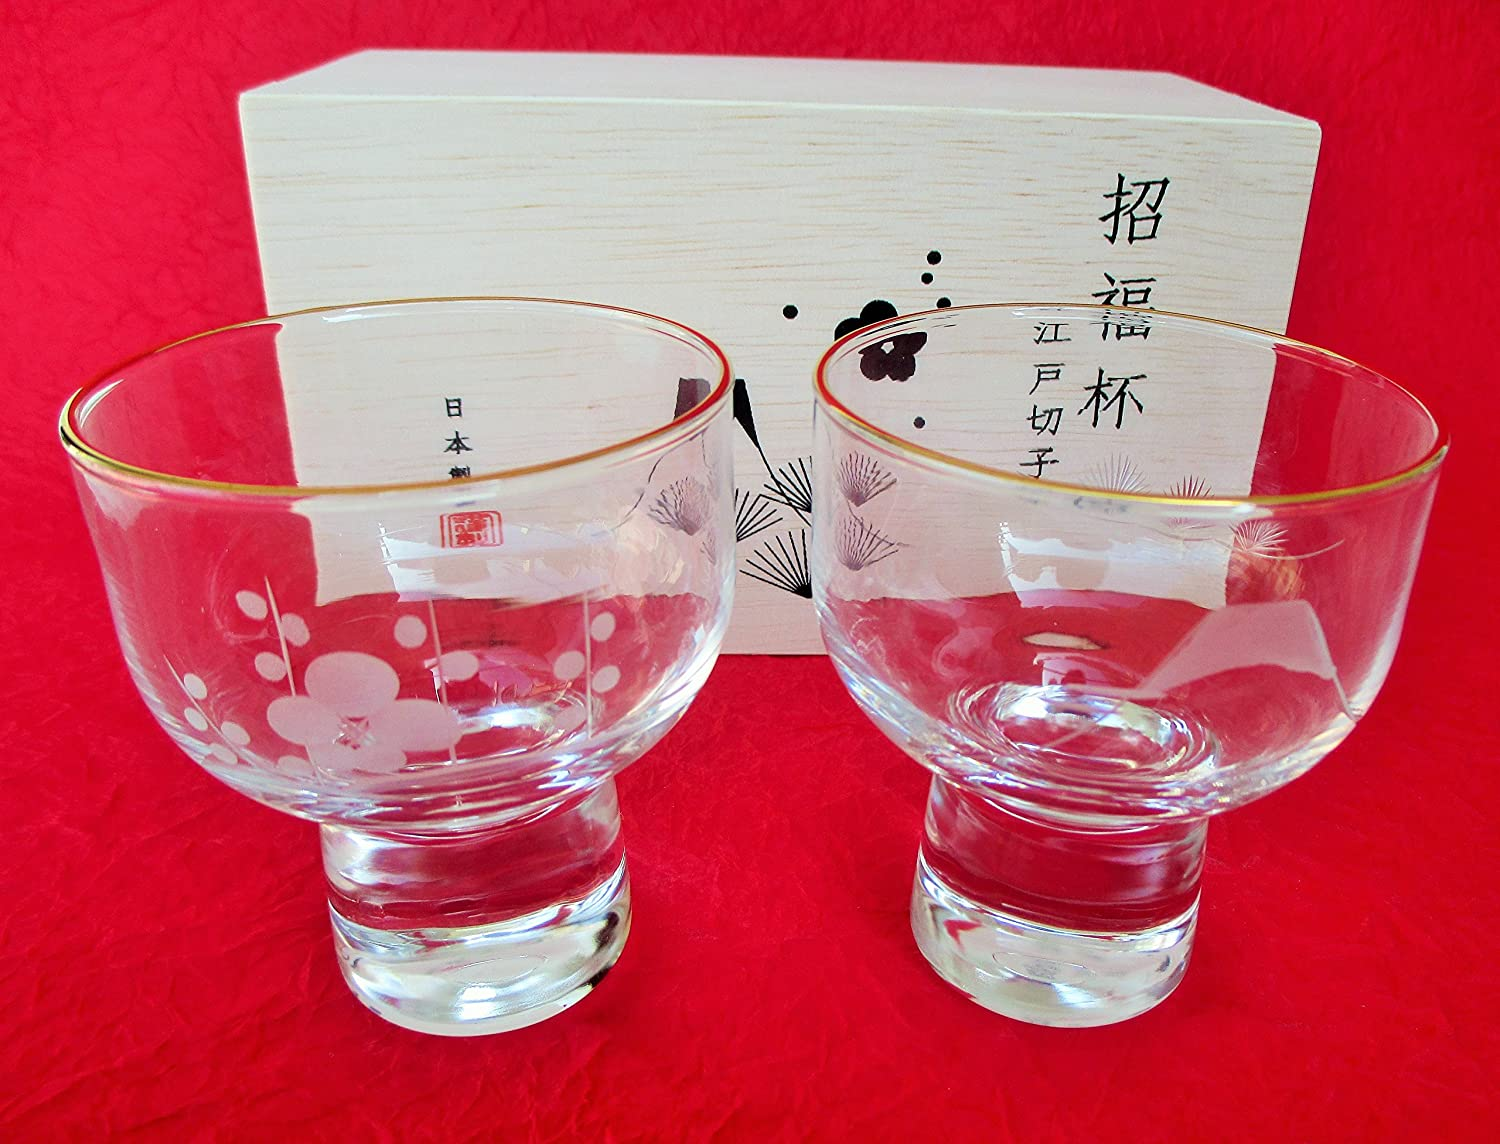 Collectible Japanese Sake Glass,